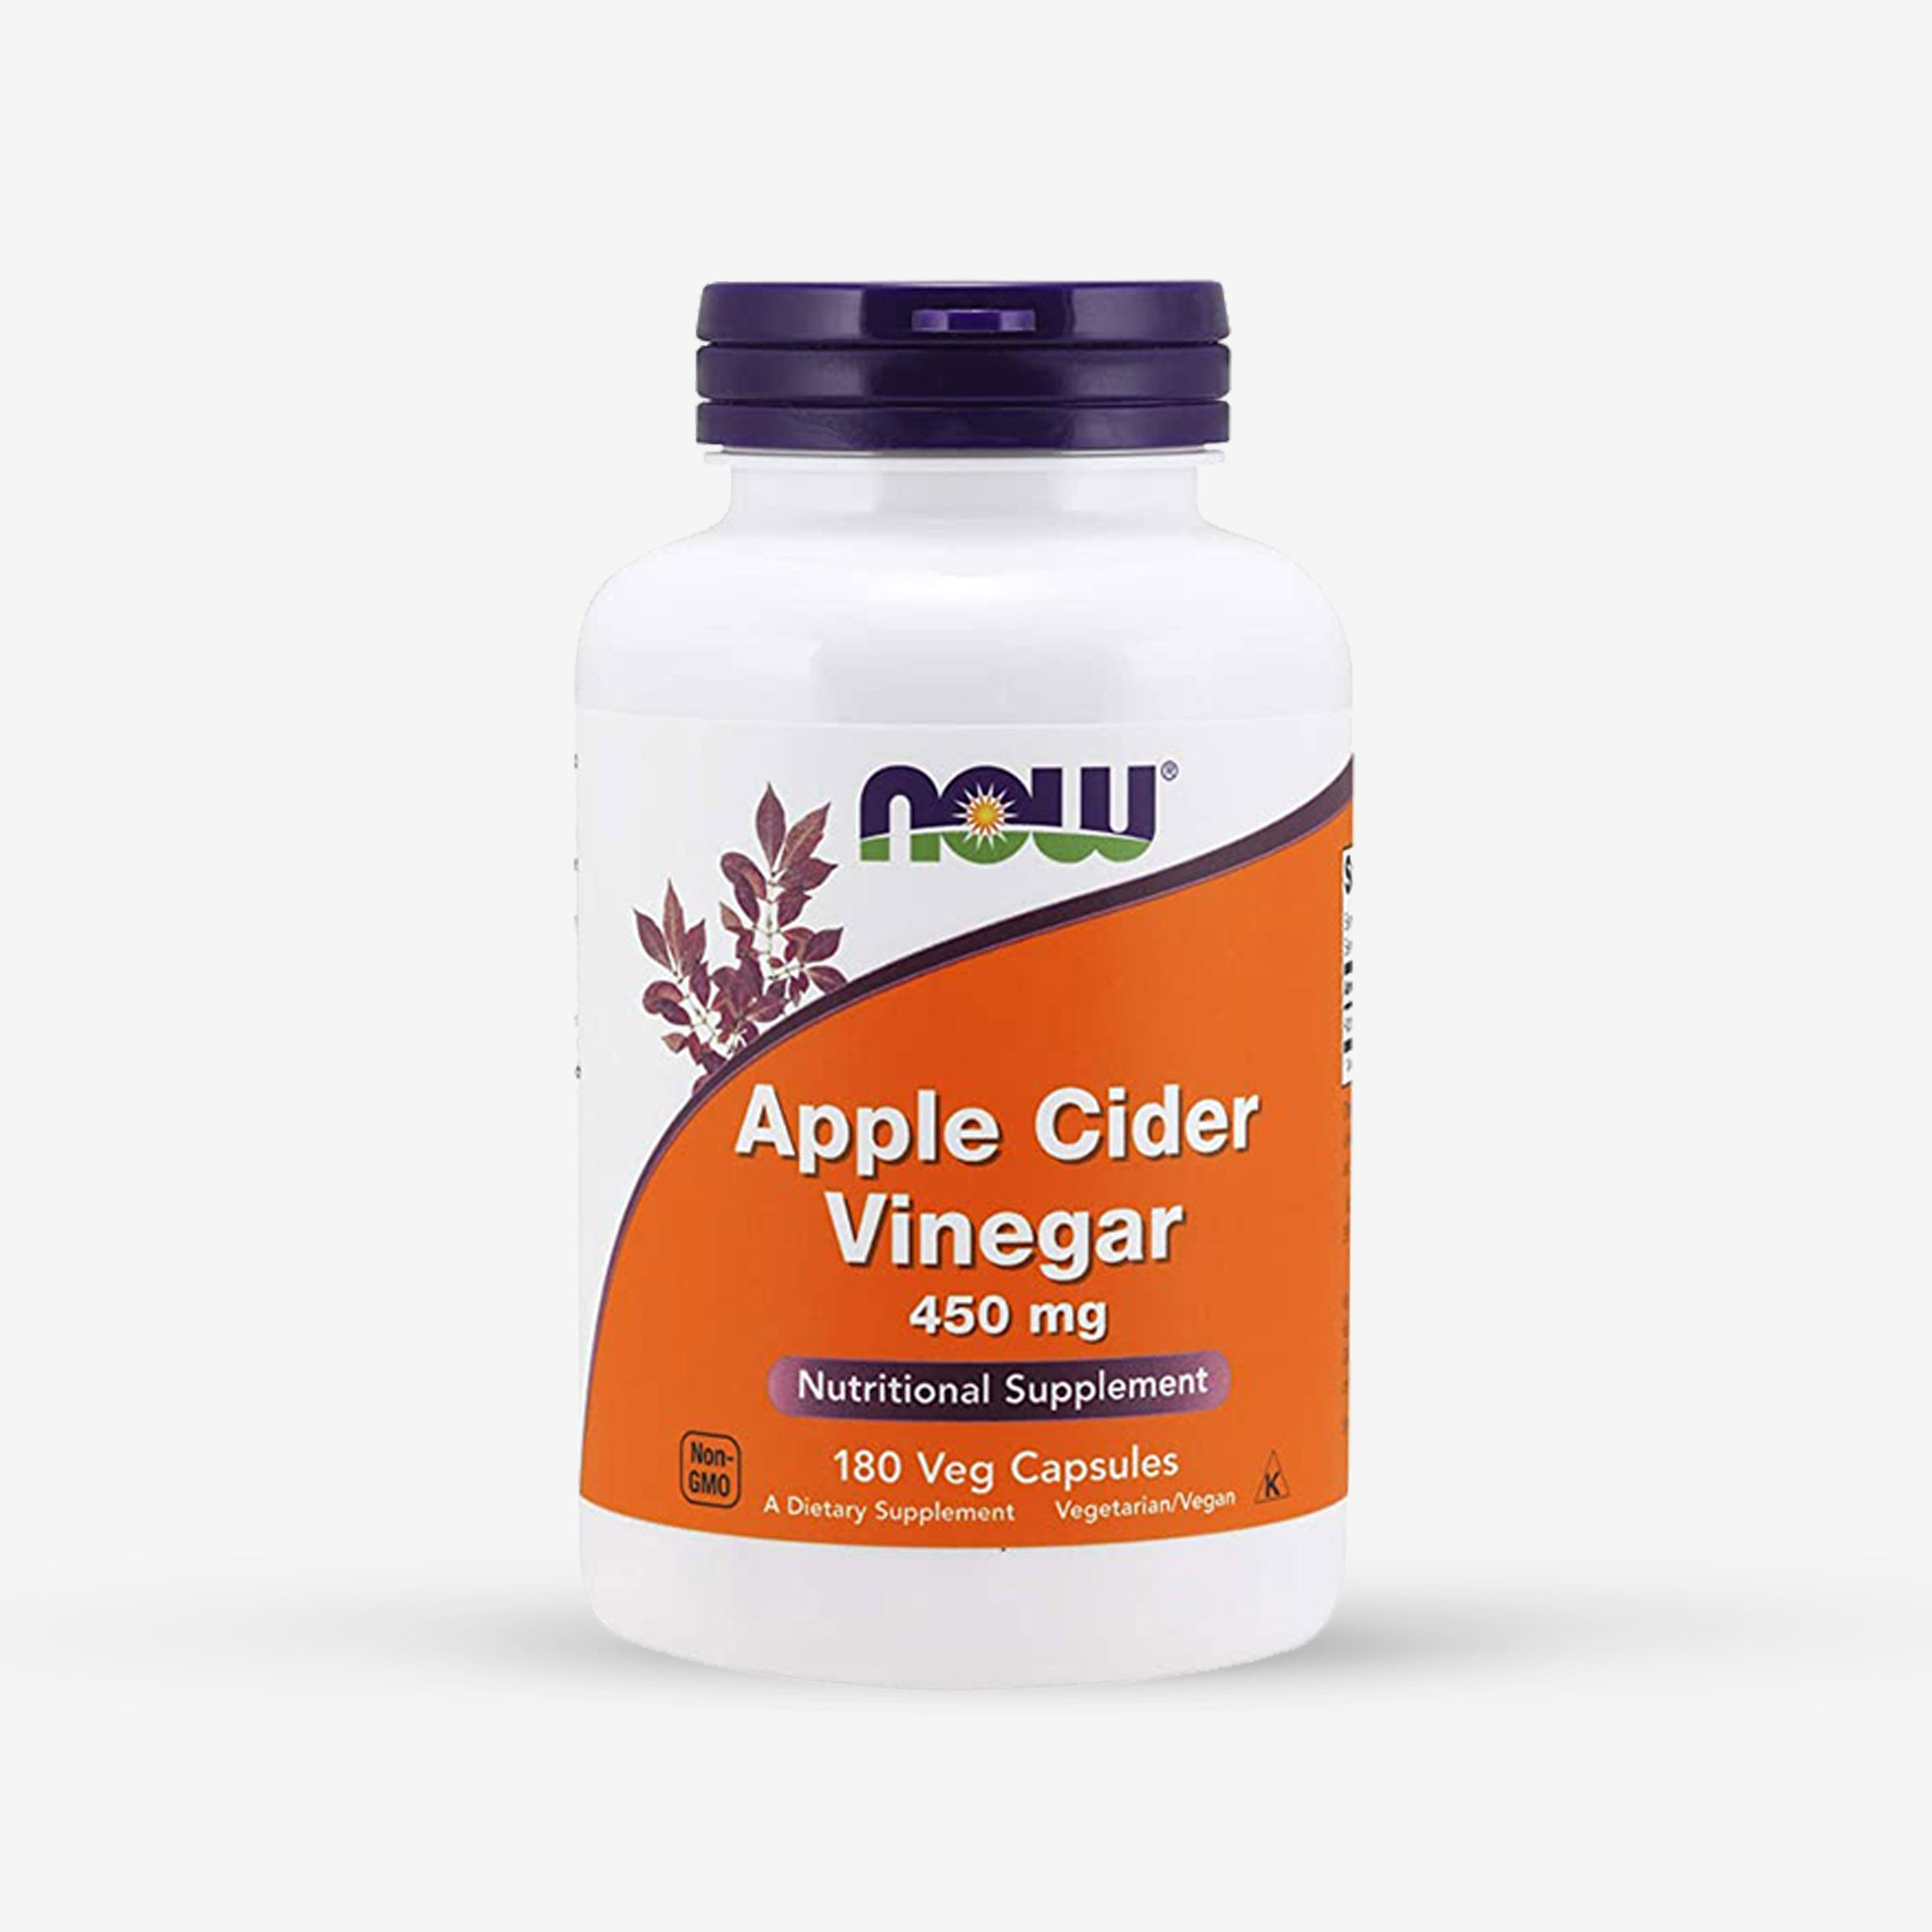 NOW Apple Cider Vinegar 450mg (180 Veg Capsules)